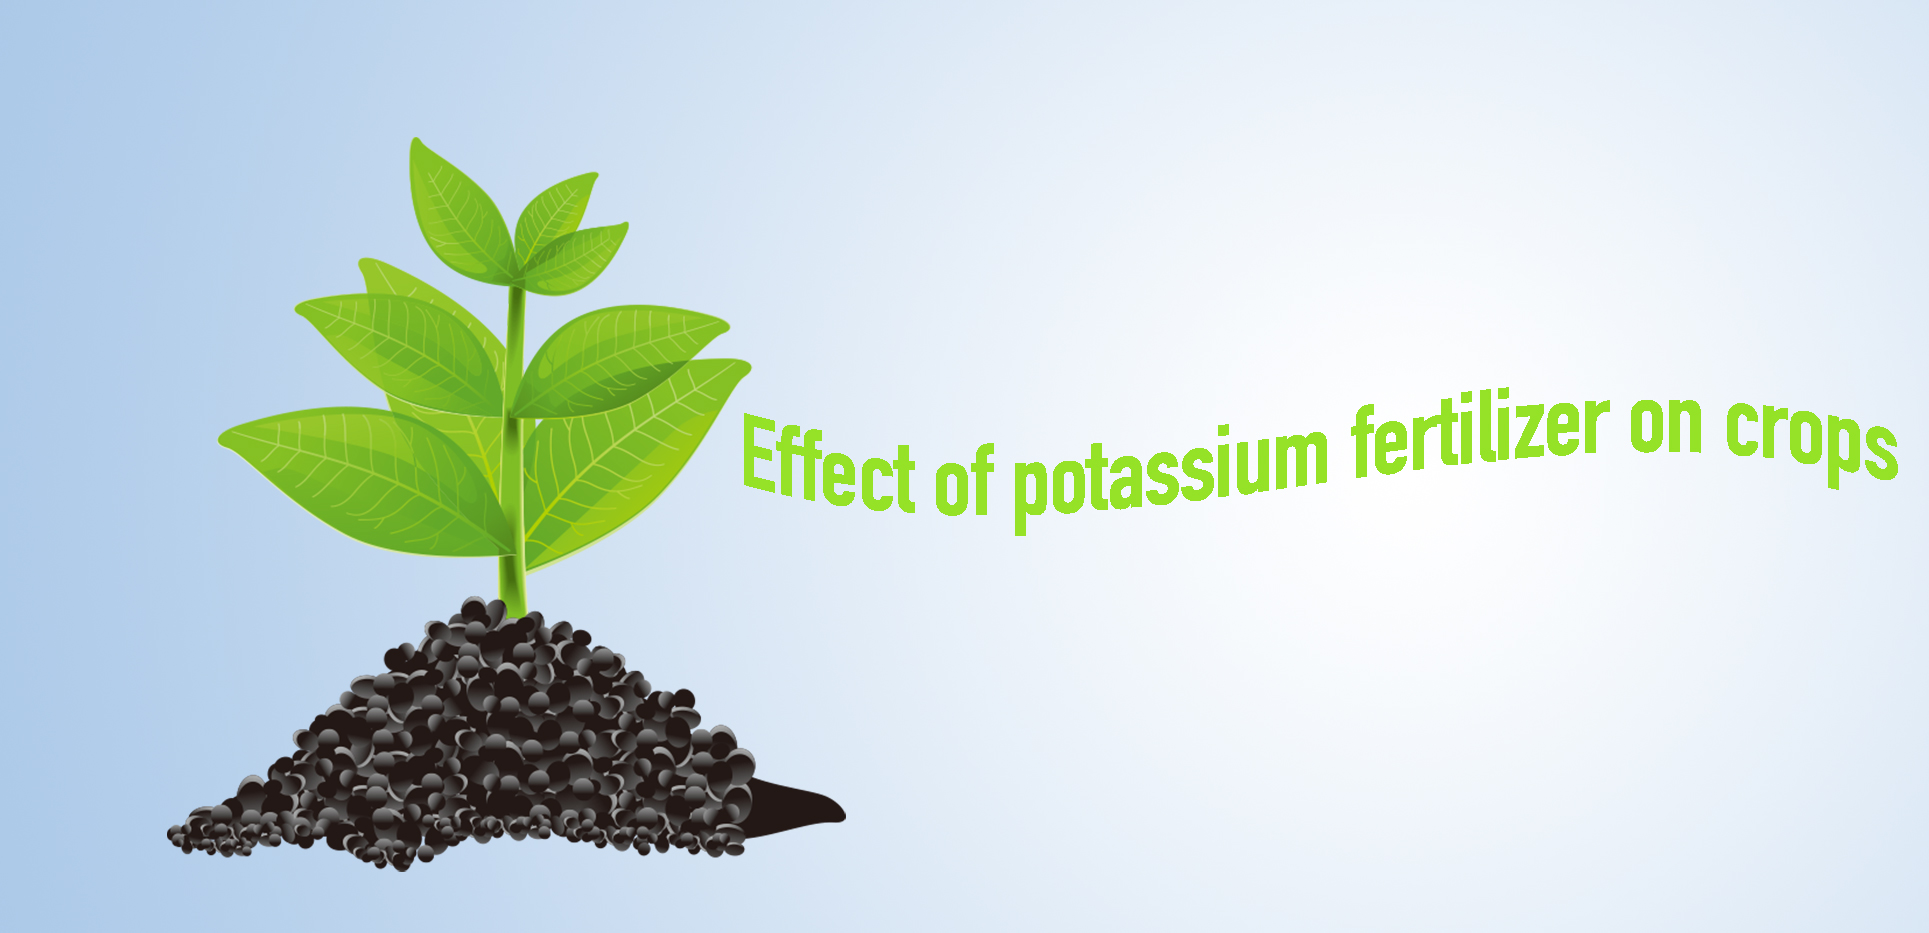 Effect of potassium fertilizer on crops